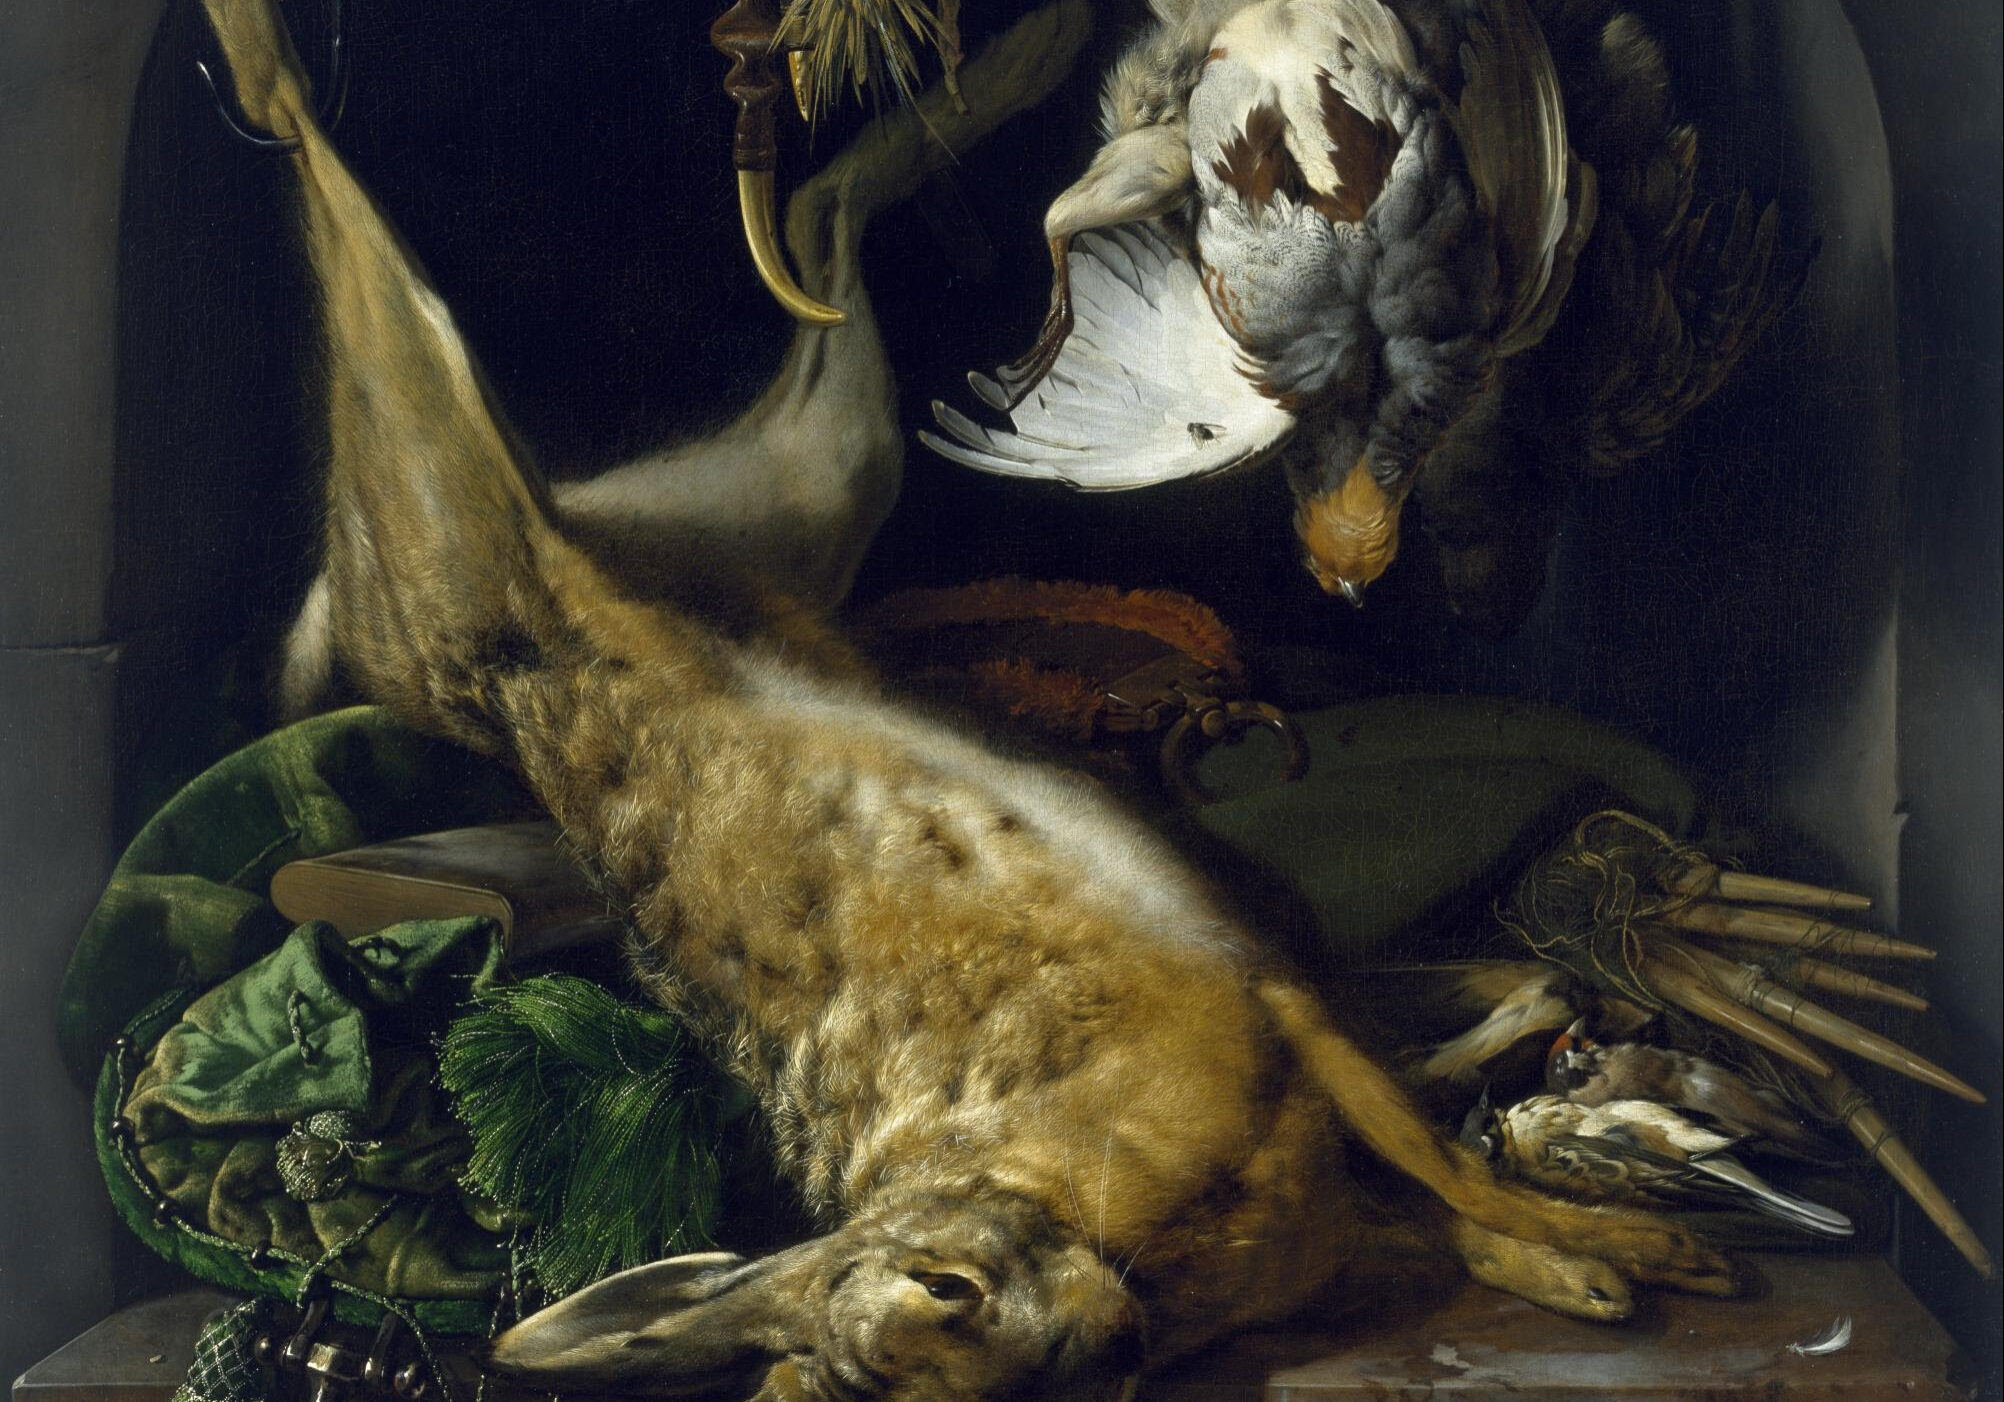 Jan_Weenix_-_Still_Life_of_a_Dead_Hare,_Partridges,_and_Other_Birds_in_a_Niche_-_Google_Art_Project